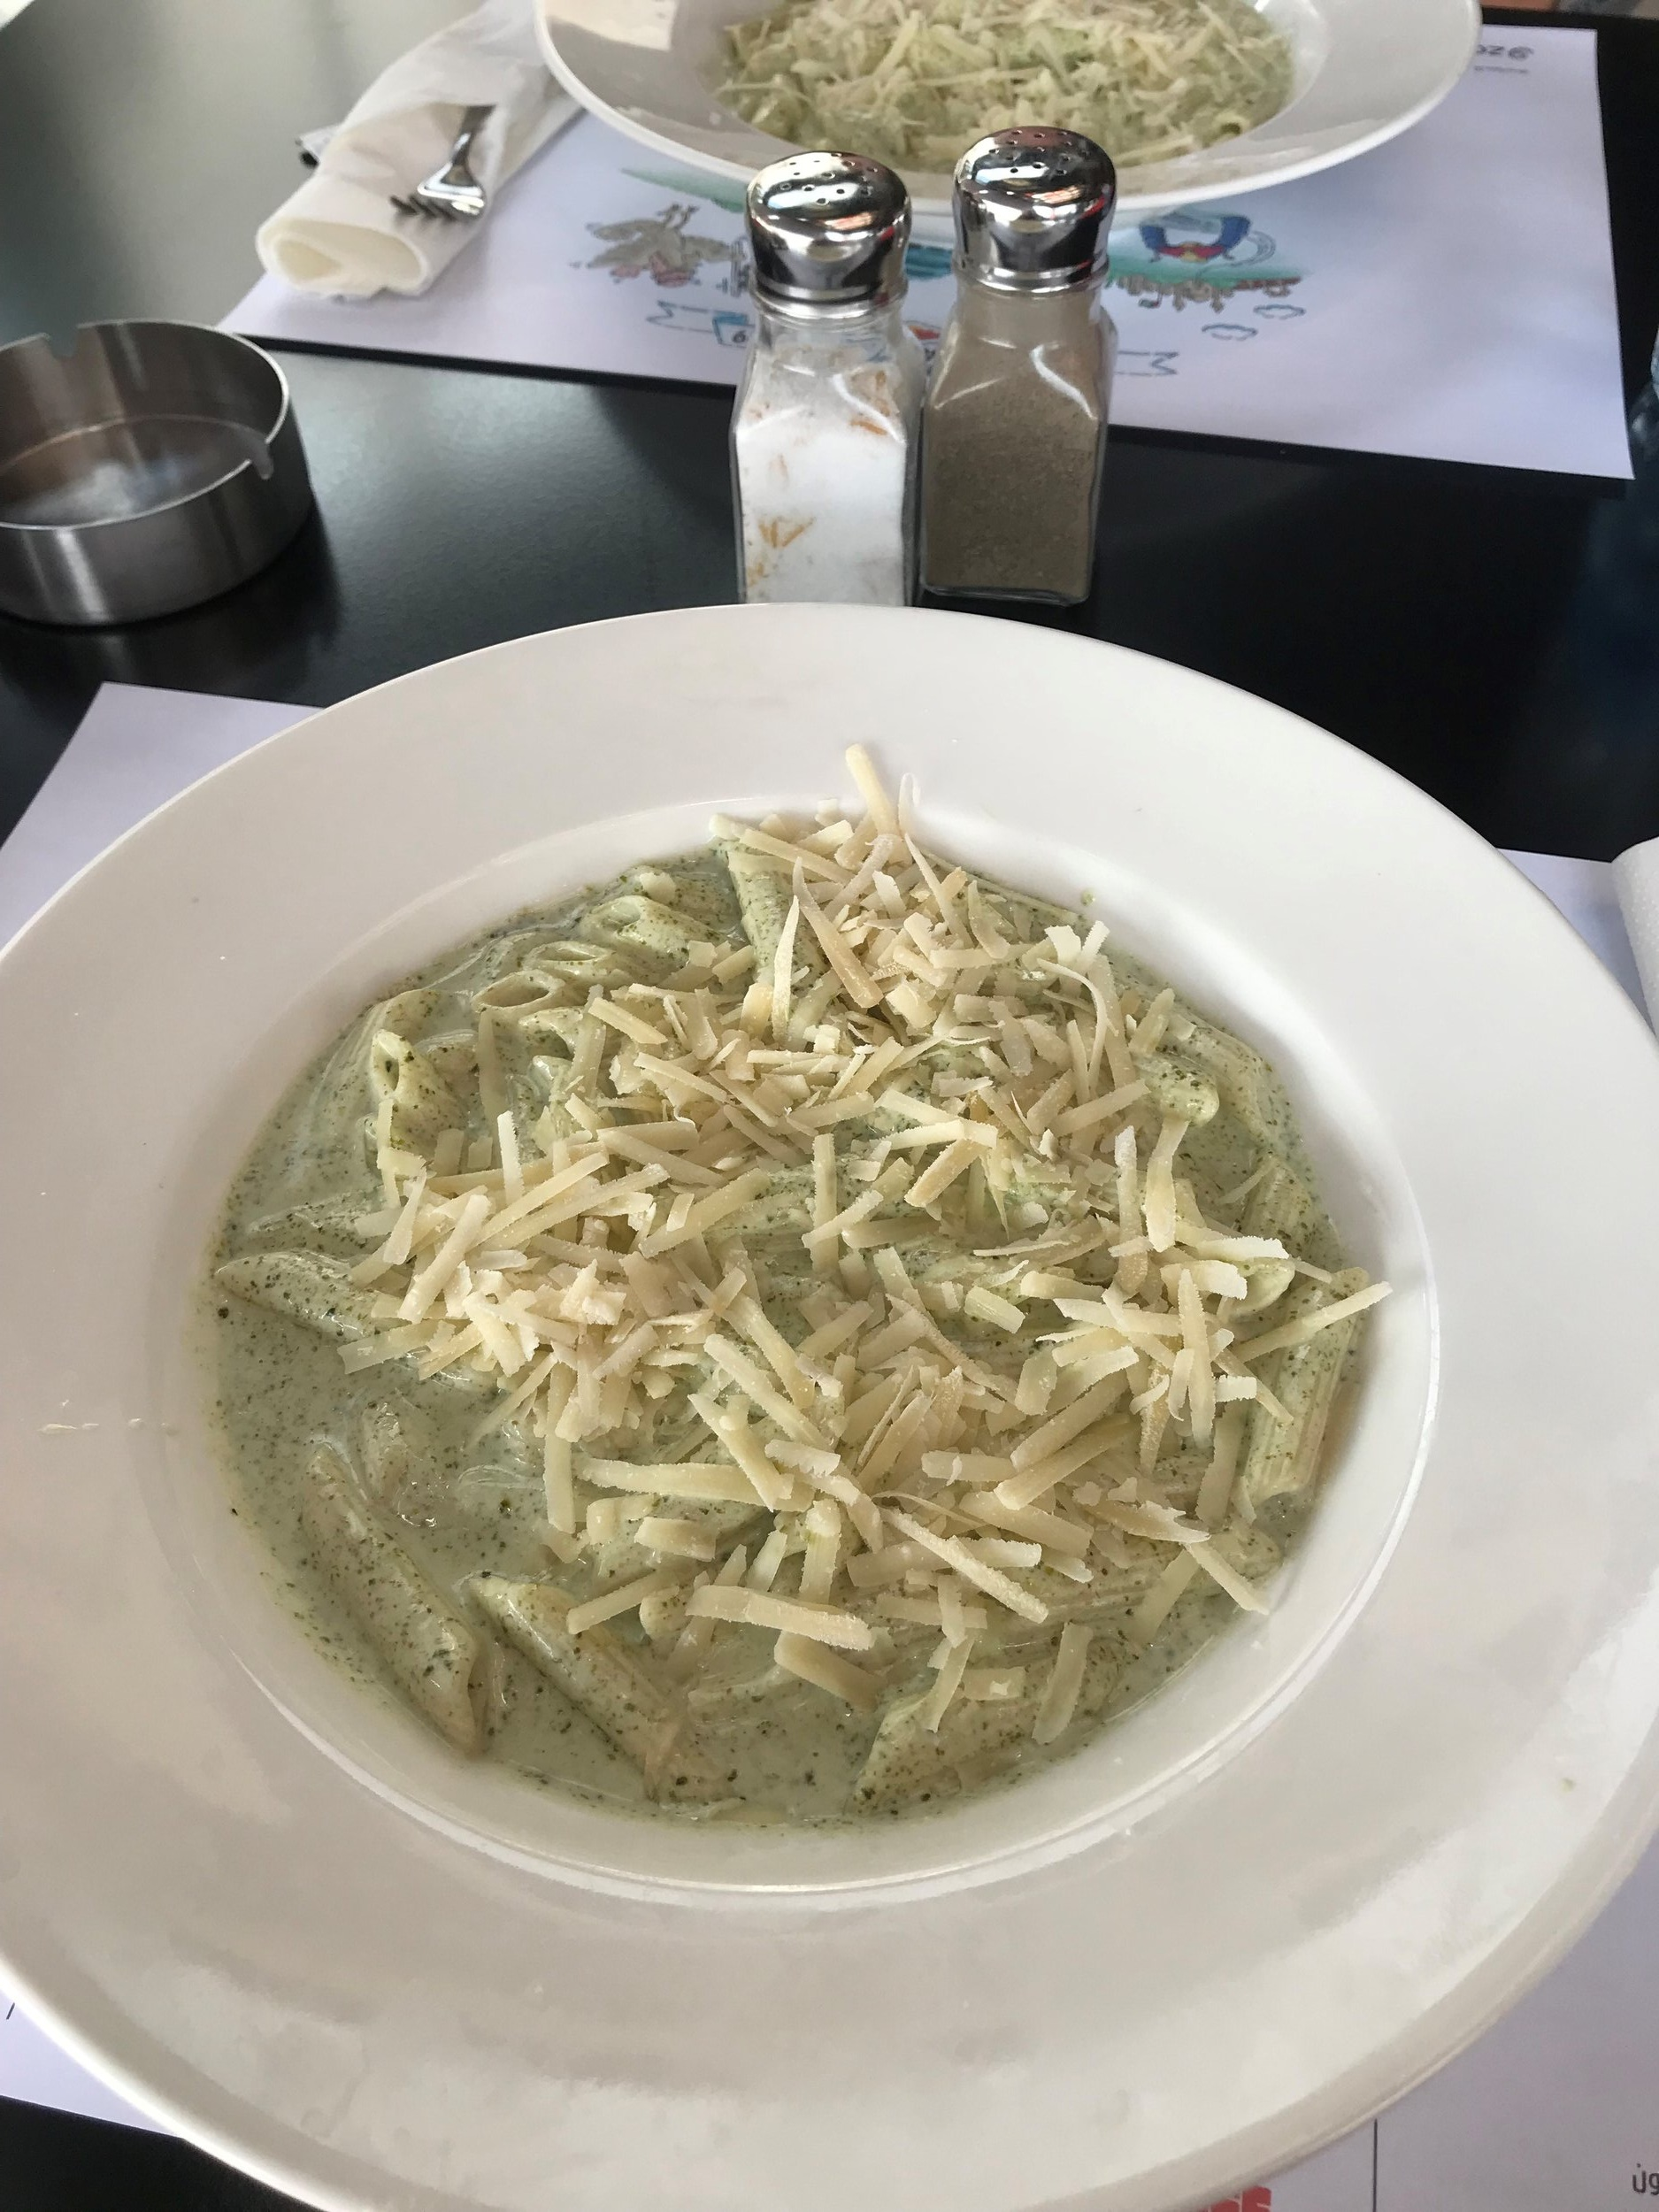 6. Vis a Vis Café in Abdoun  — Best and cheapest (3.5 JD) pesto pasta in the city. Photo Credit: Arguin, 2019